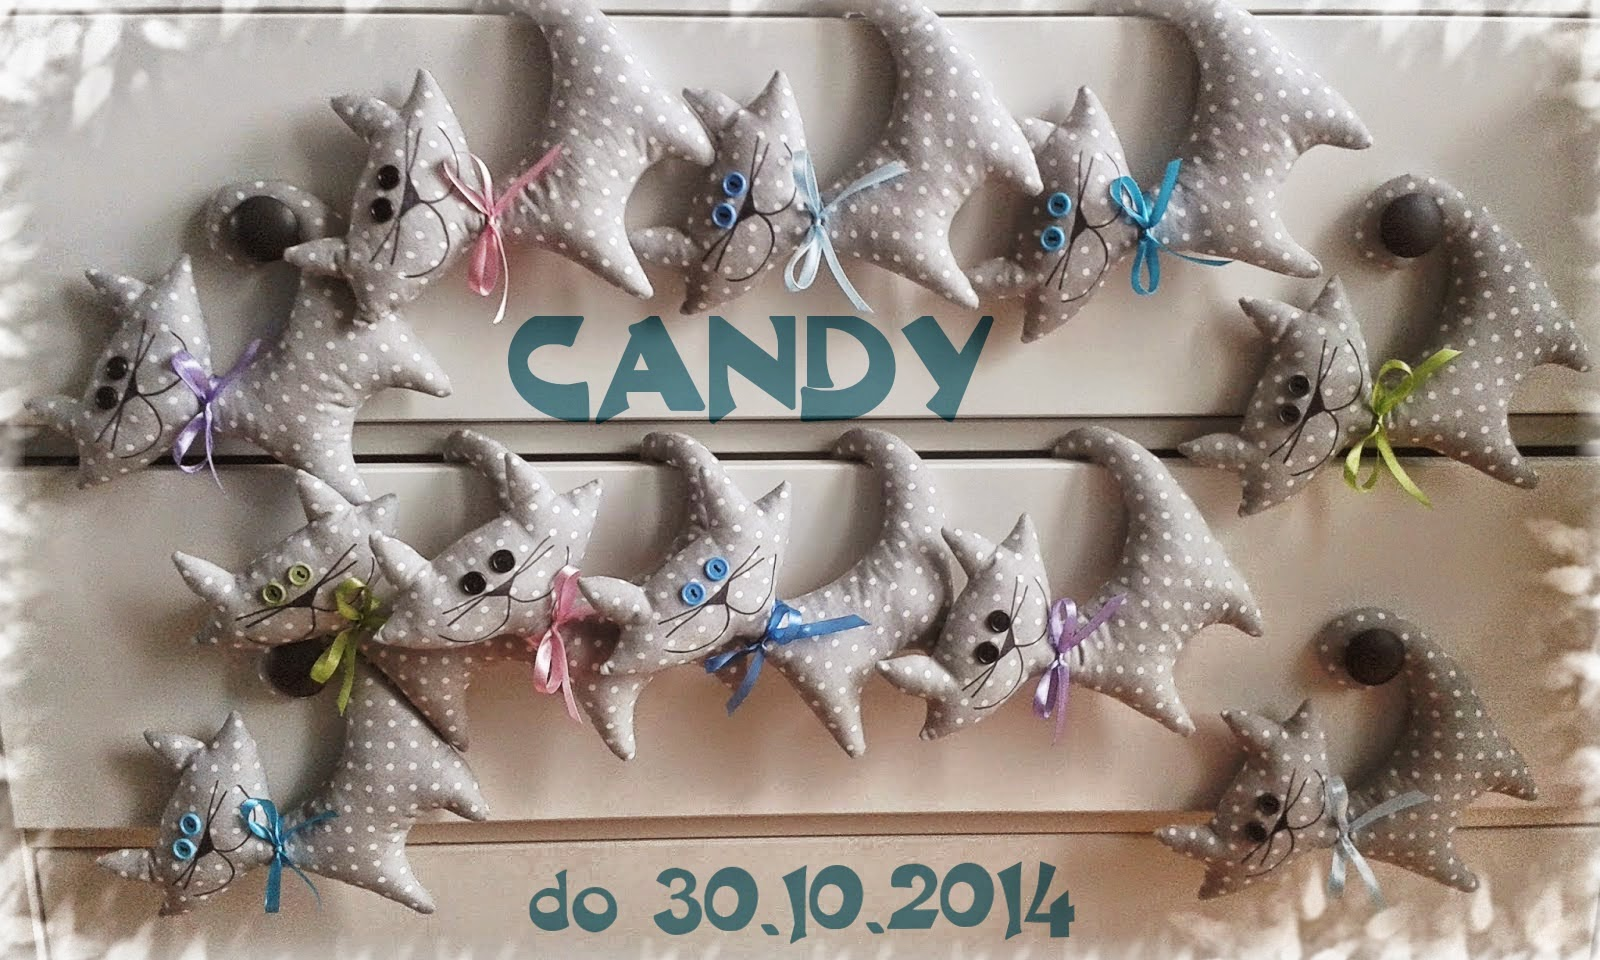 Candy 30.10